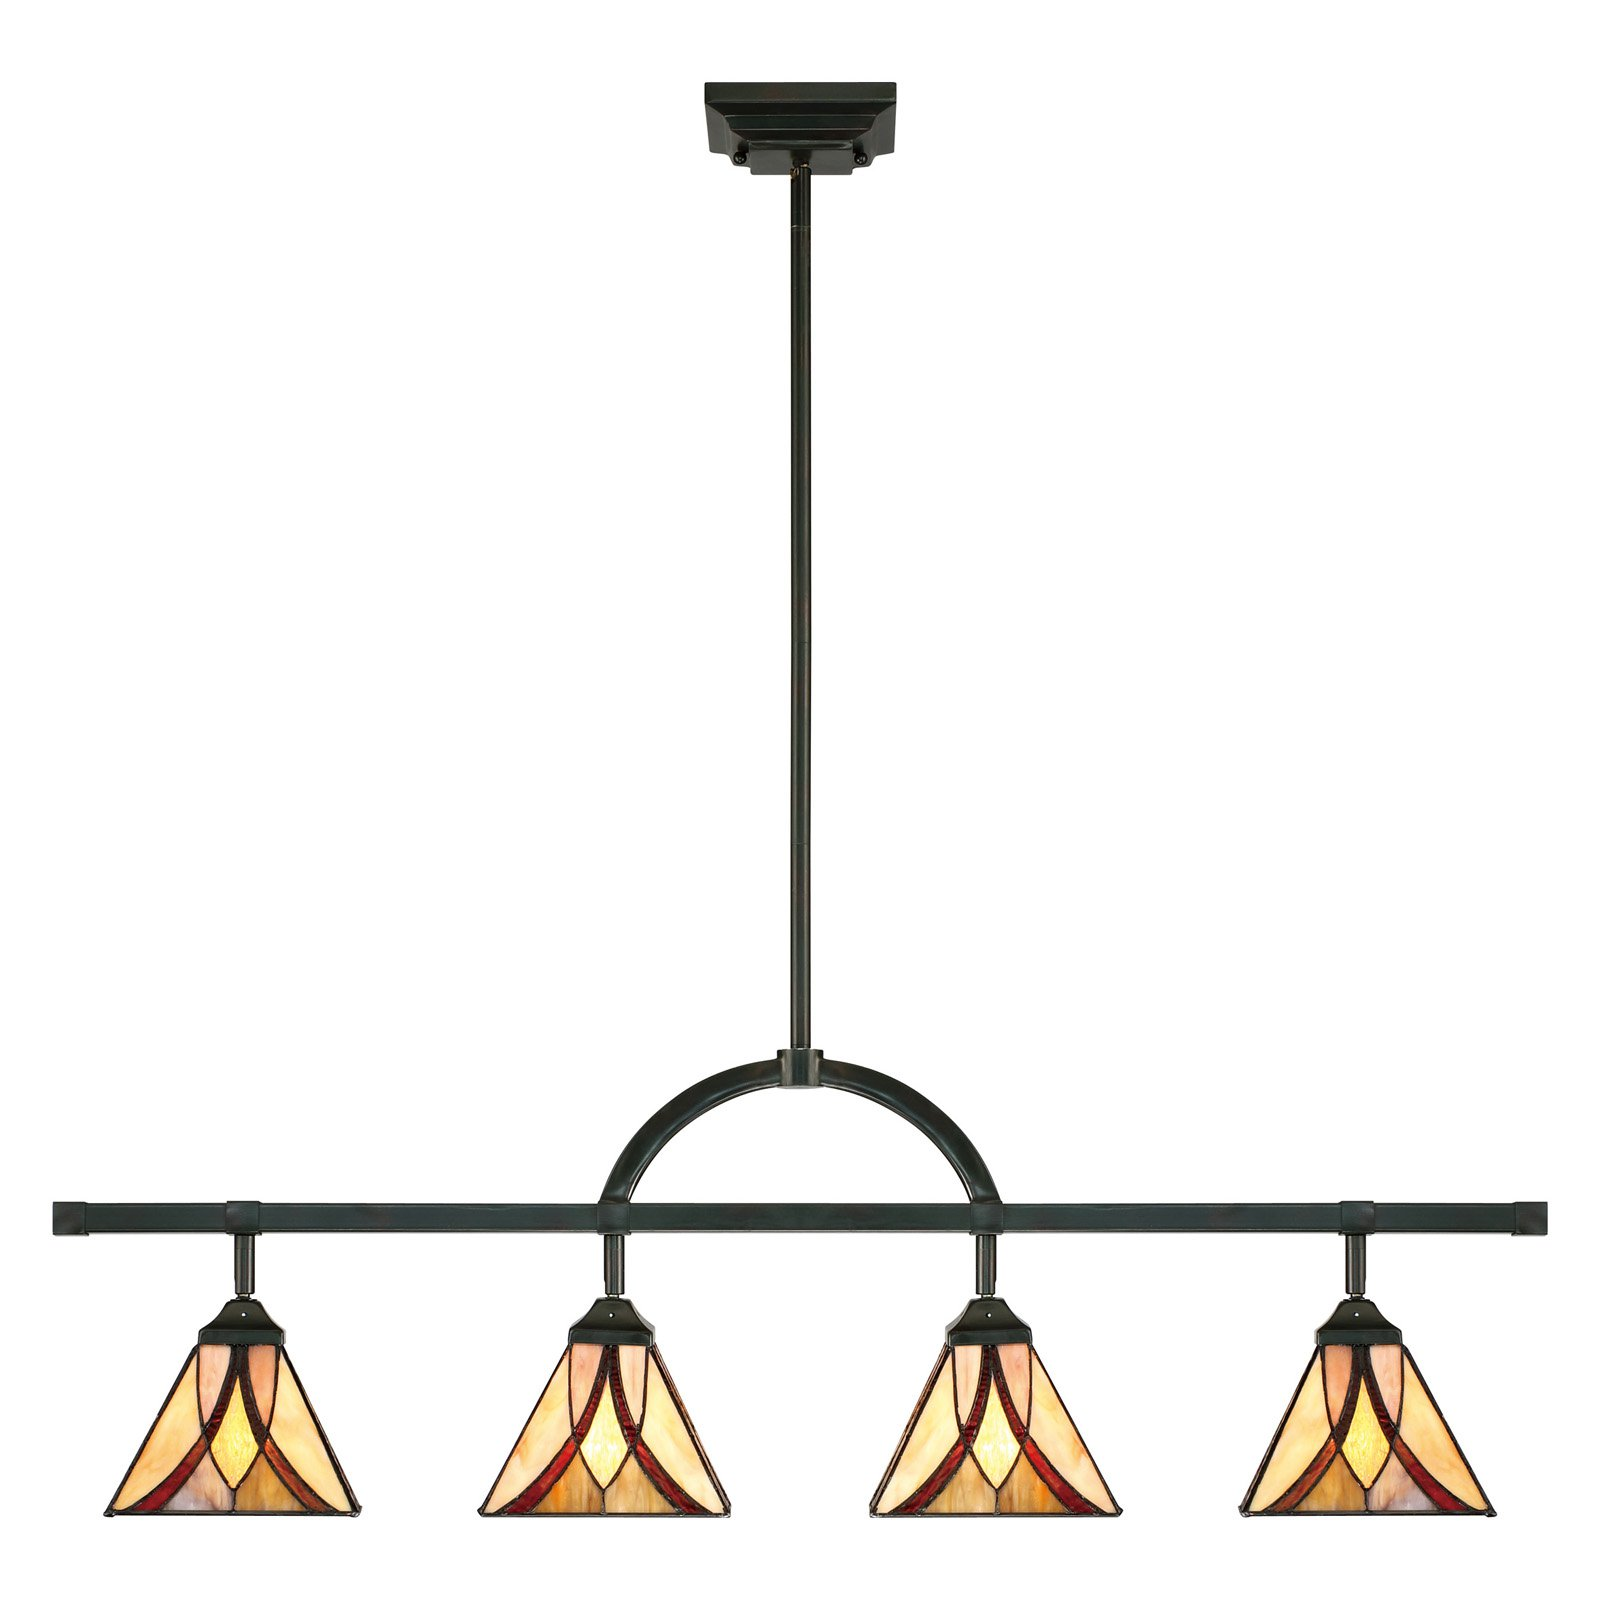 Quoizel Asheville TFAS1404VA Fixed Track Light by Quoizel